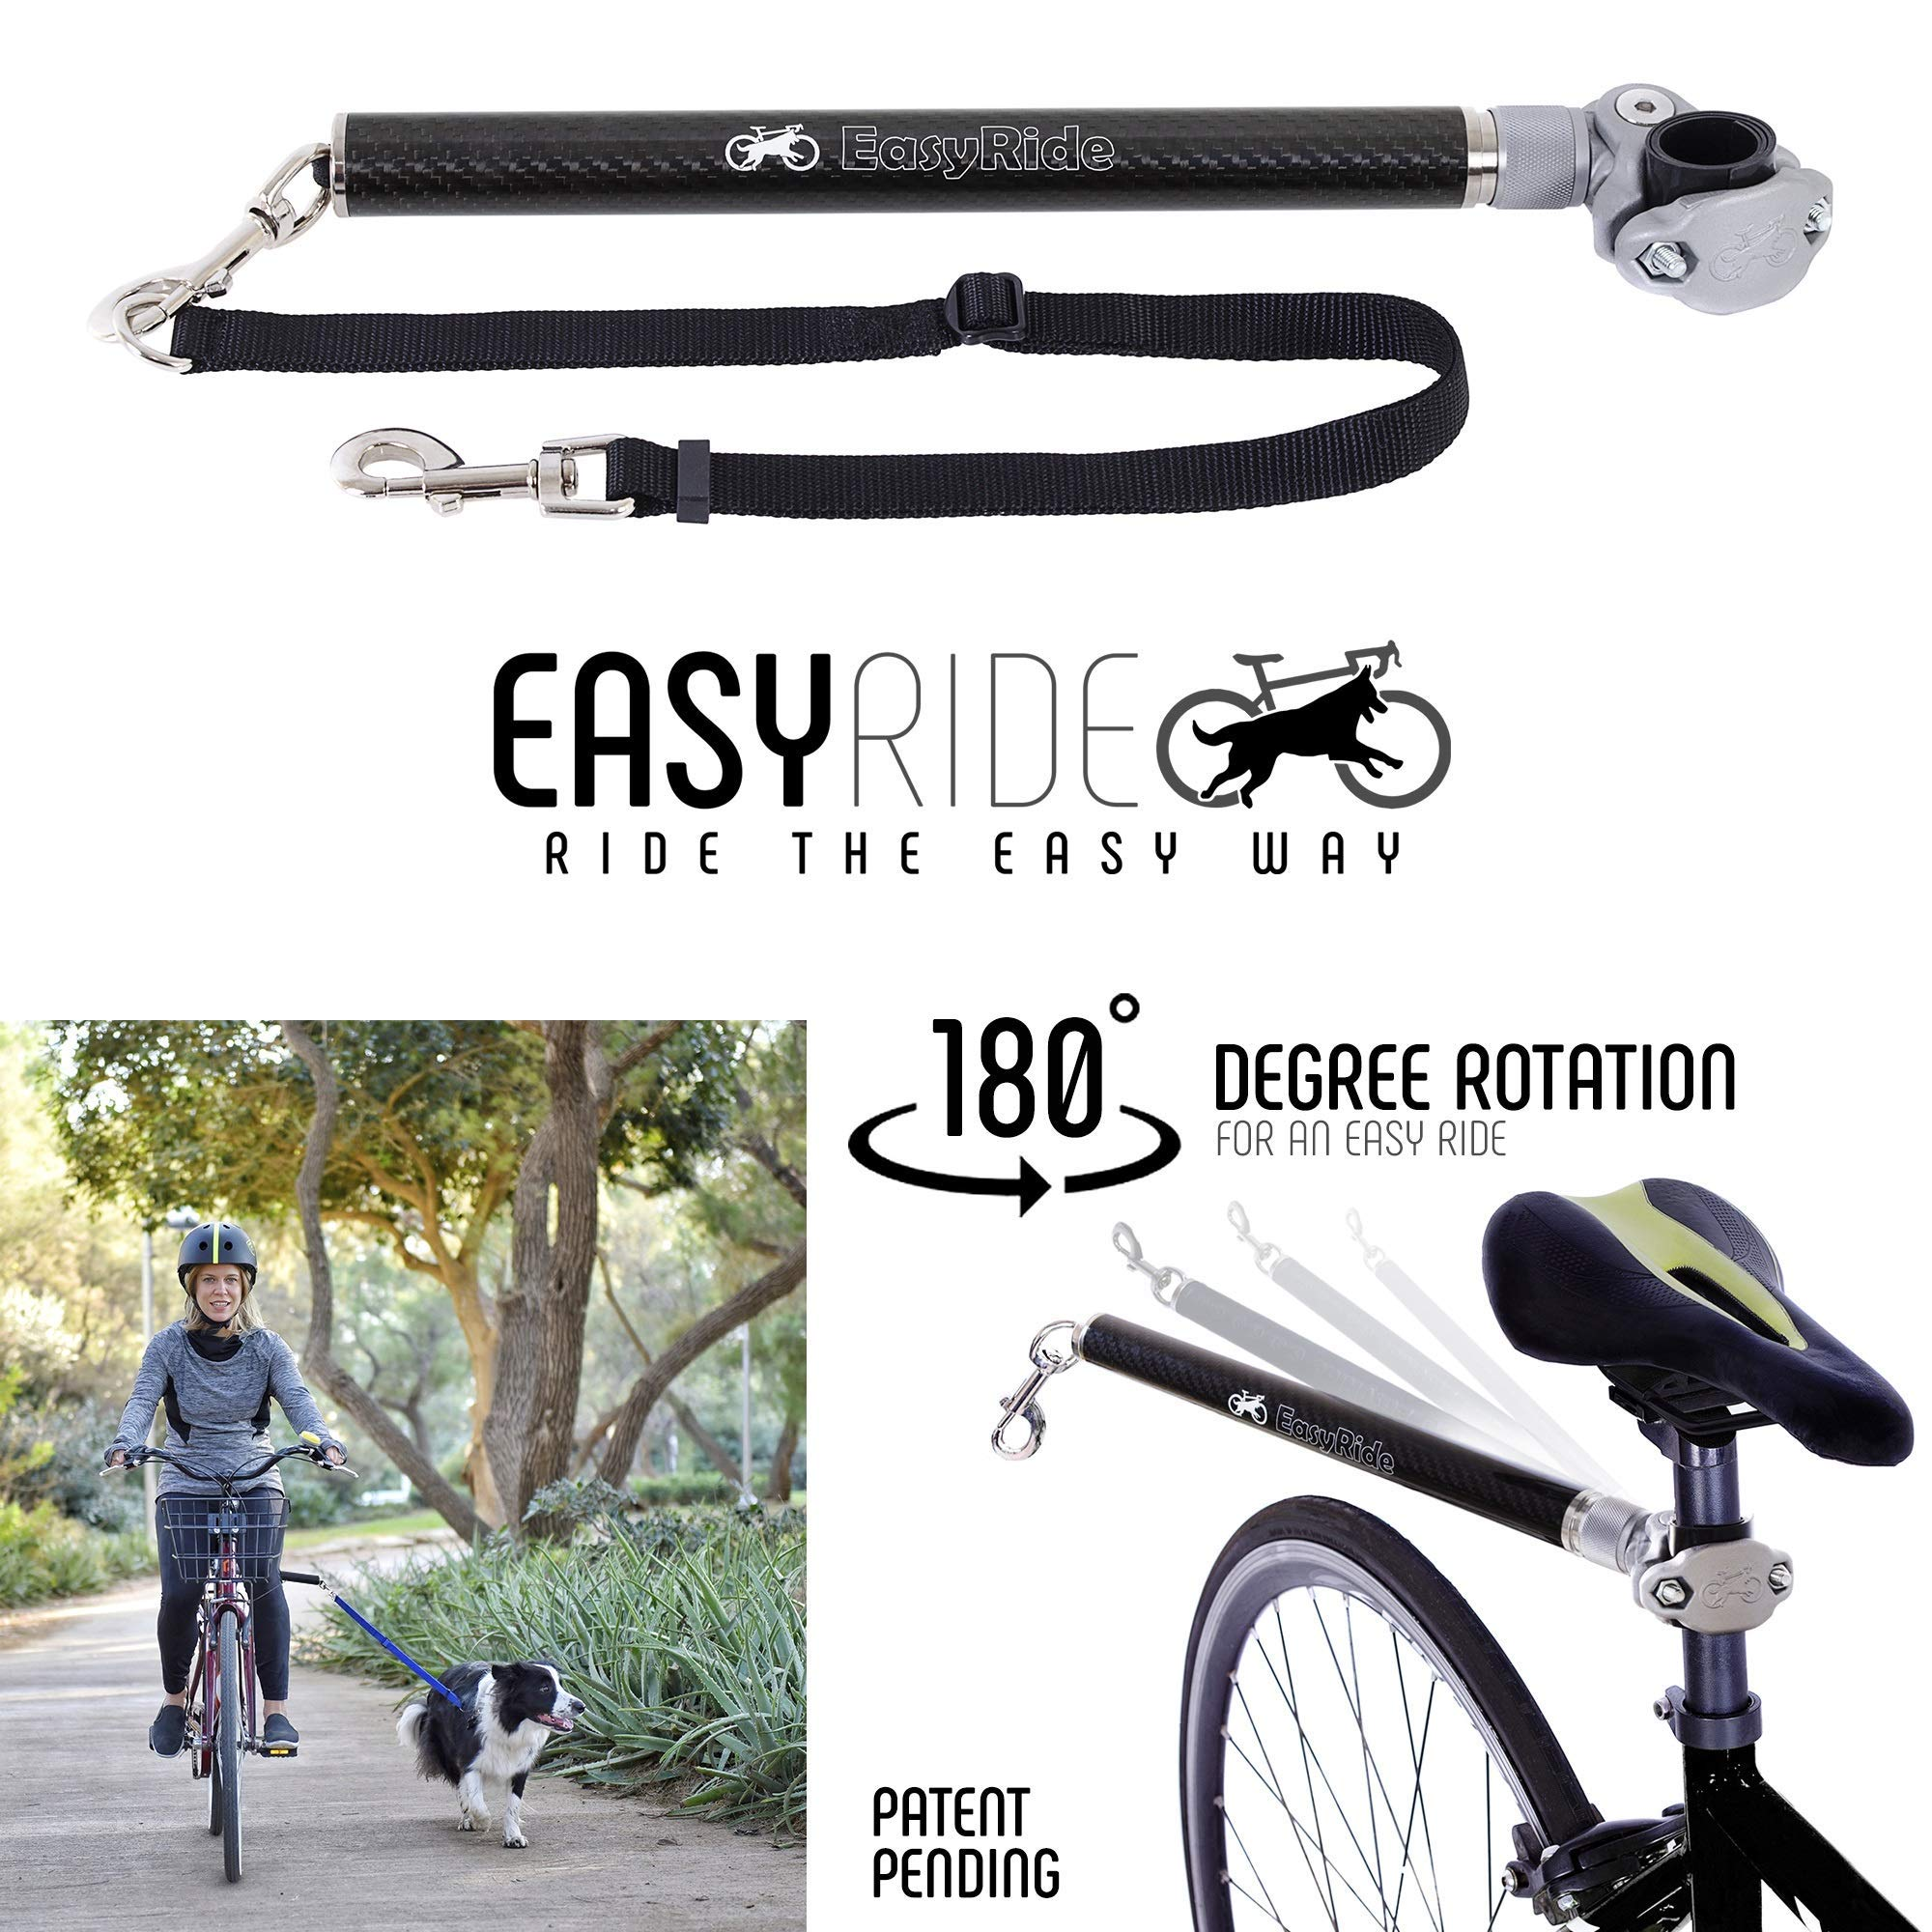 MALABI EasyRide Dog Bike Leash Set - Patent Pending Rotating with Shock Absorbers and Quick Attach Mechanism | Carbon Fiber | Hands-Free, Detachable, Adjustable Leash for The Smoothest Ride by MALABI